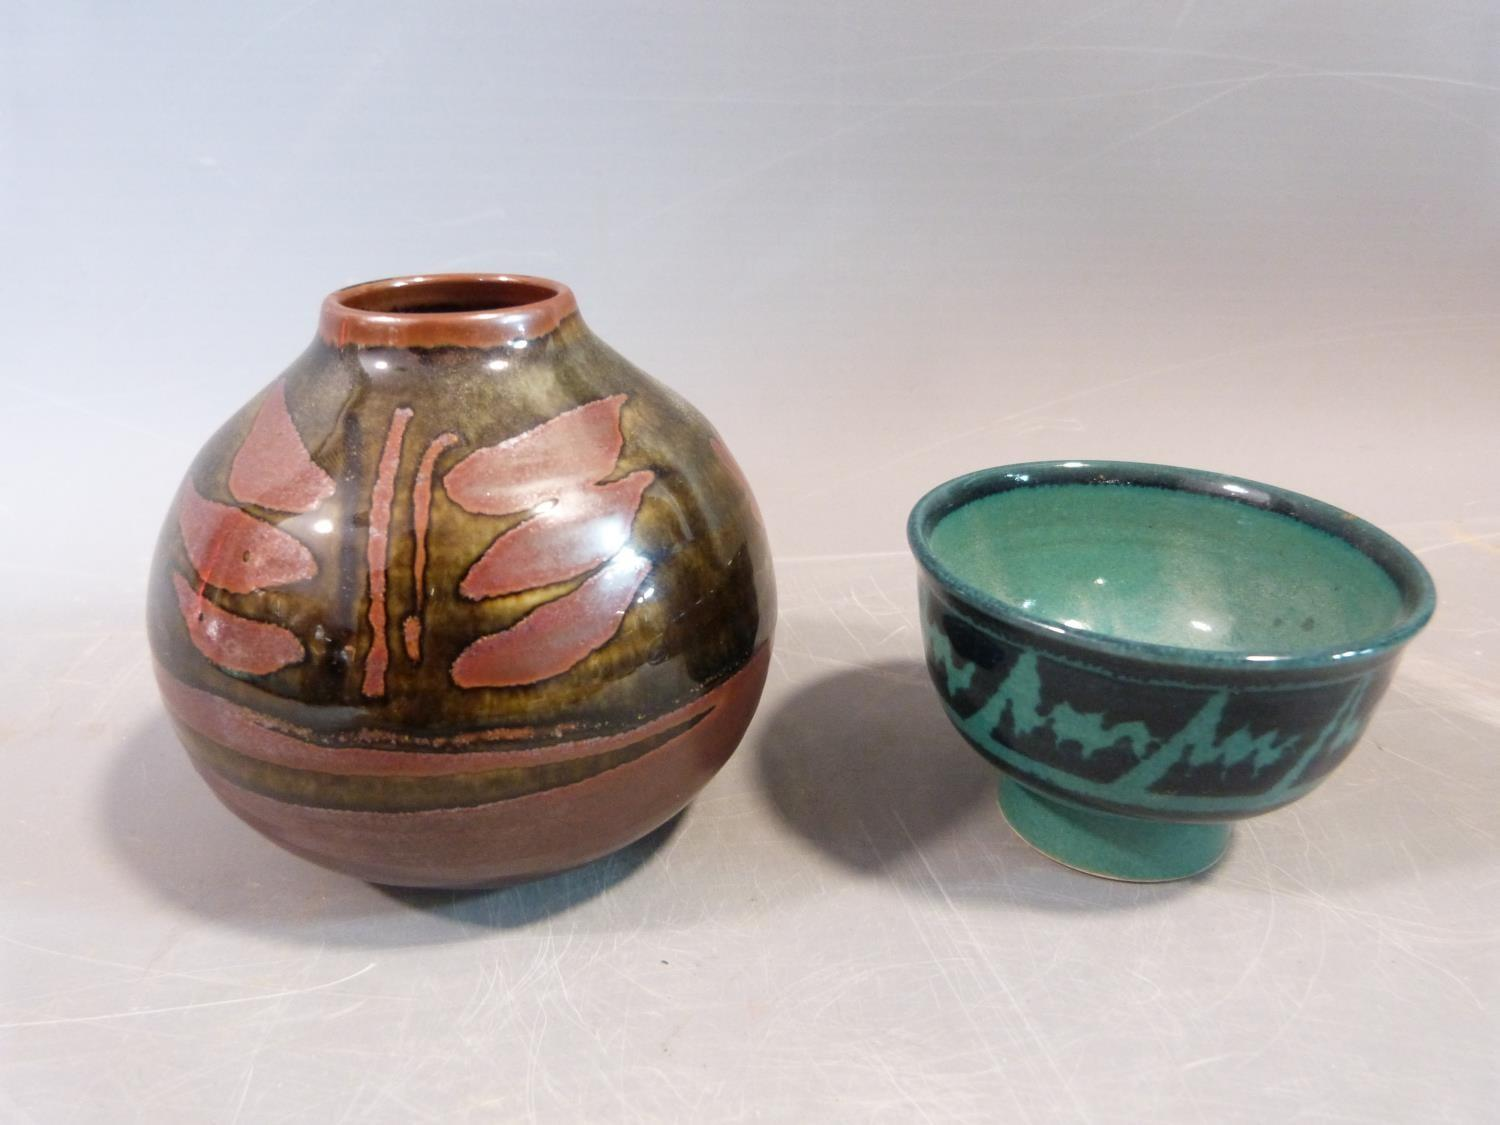 Lot 26 - A pair of studio pottery pieces by David Lloyd Jones. The vase with an abstract stylised foliate